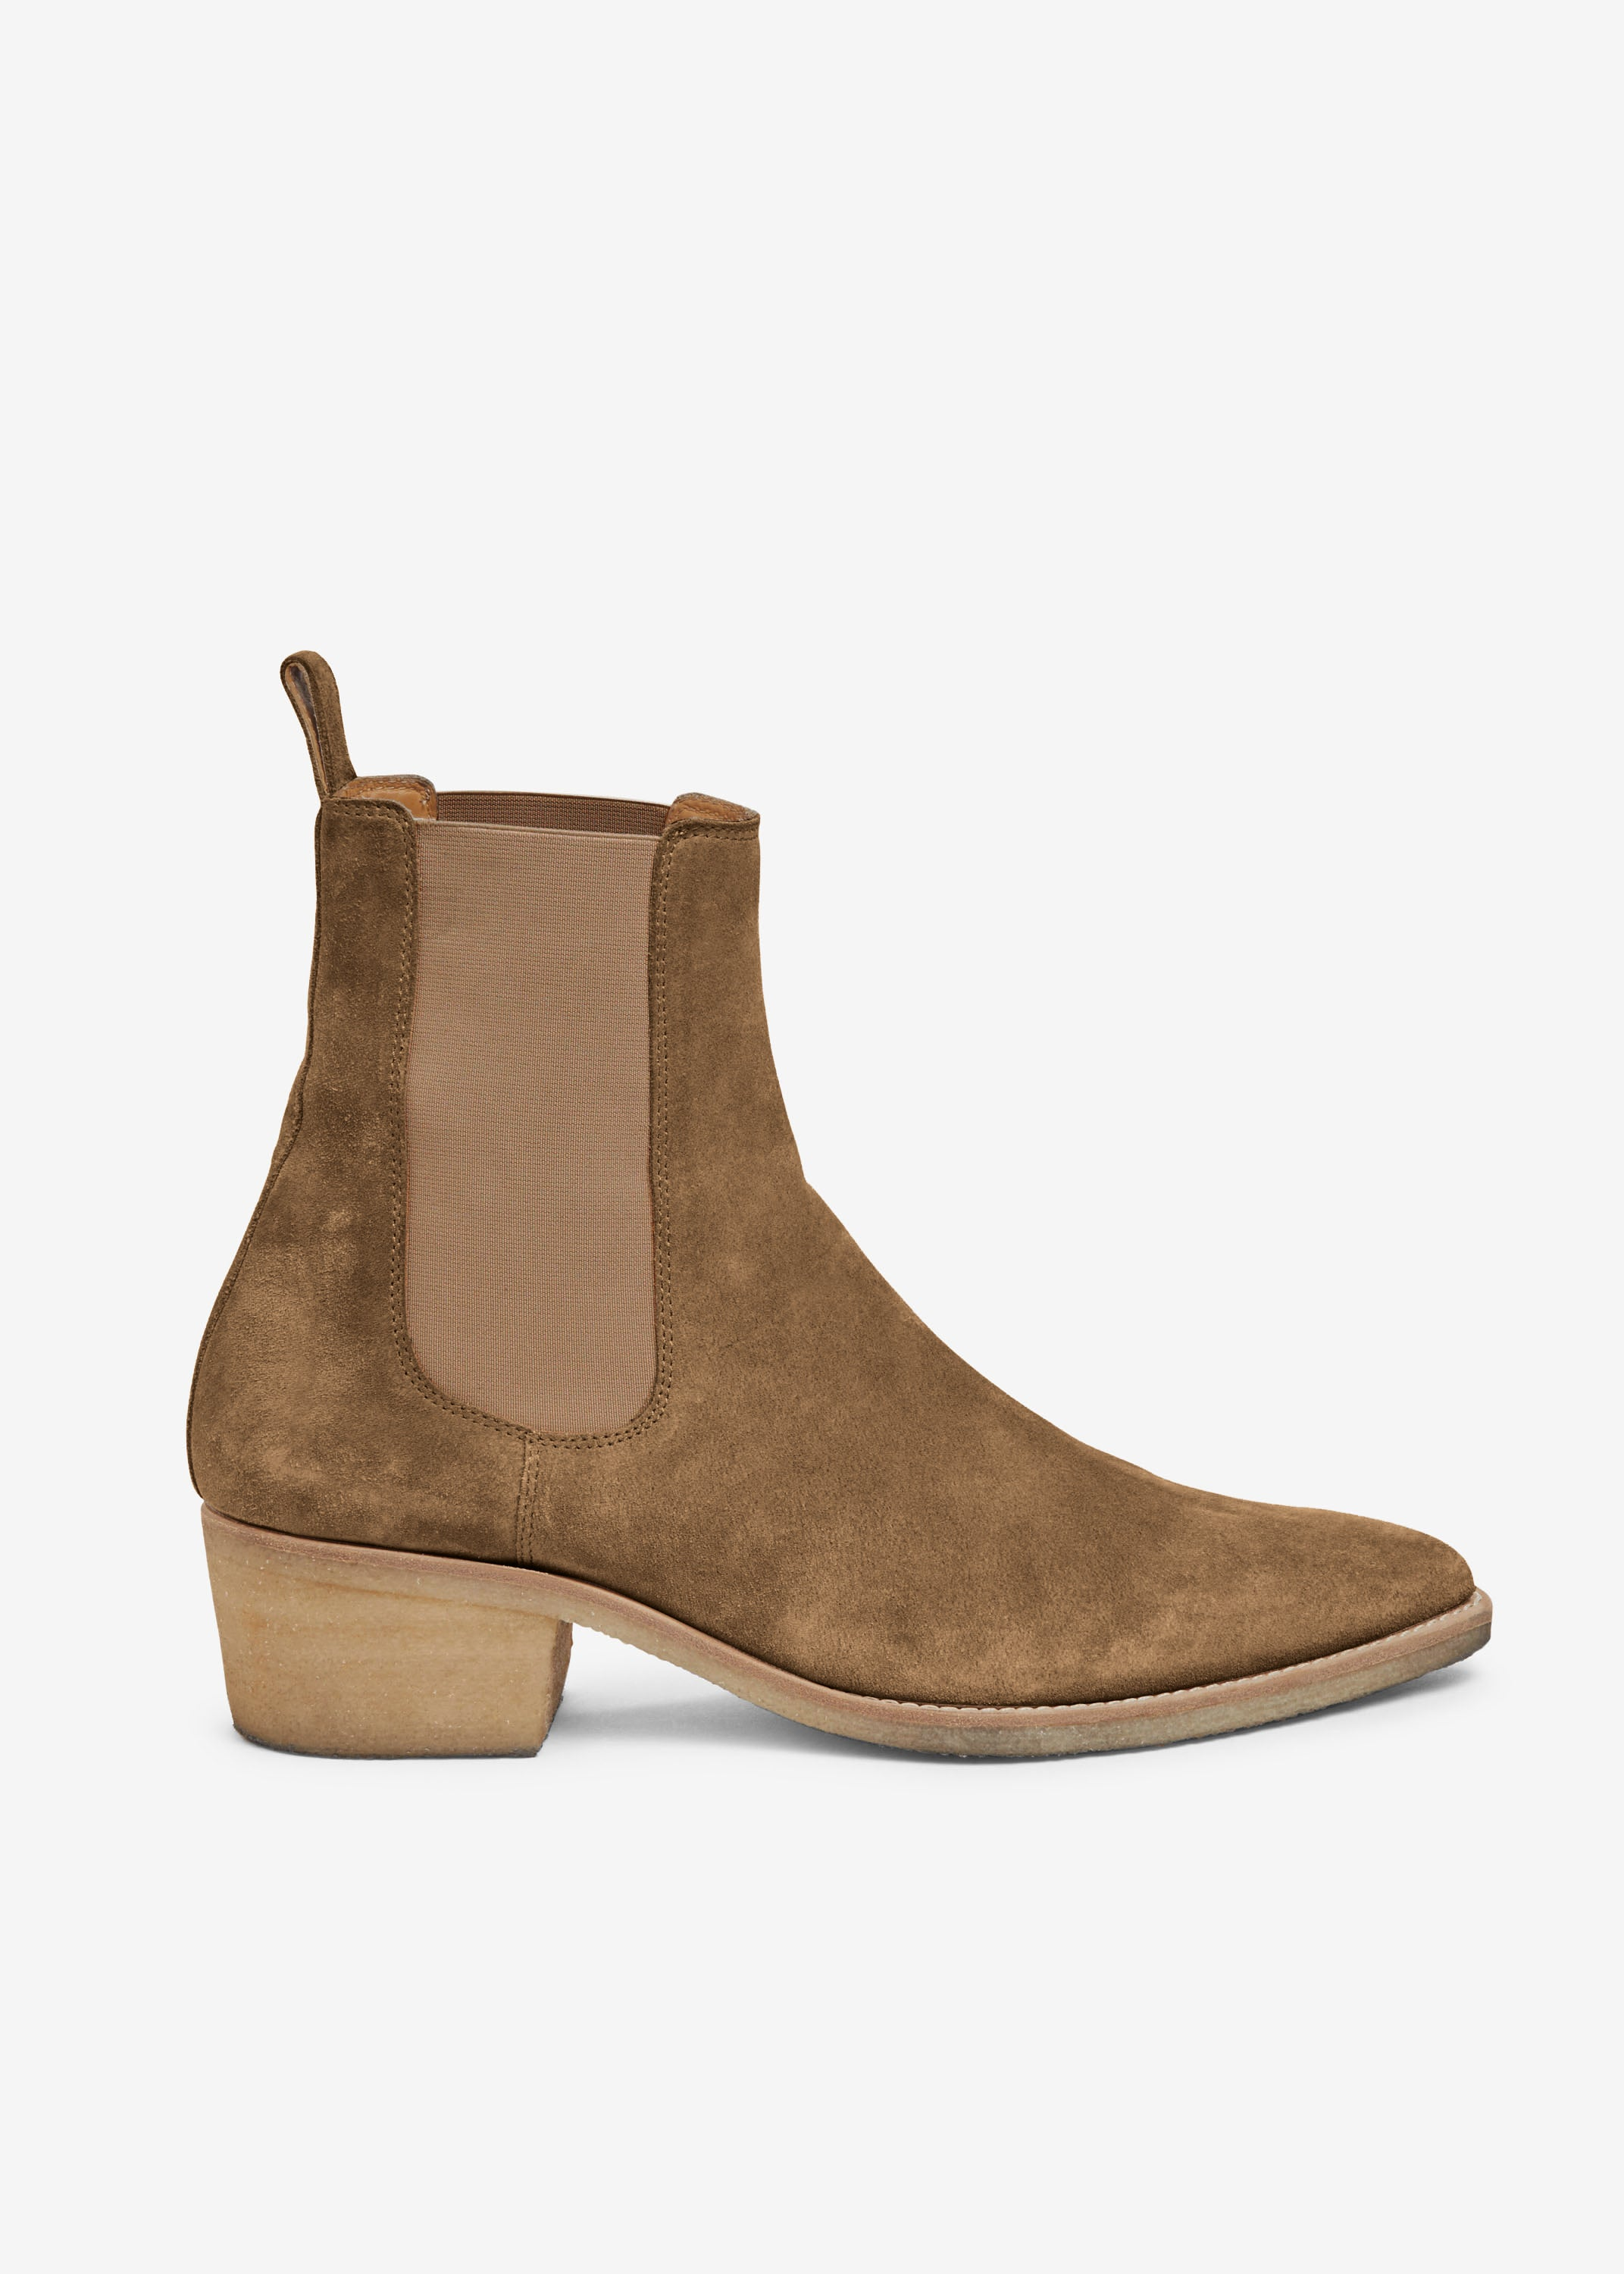 crepe-pointy-toe-chelsea-boot-fango-image-1